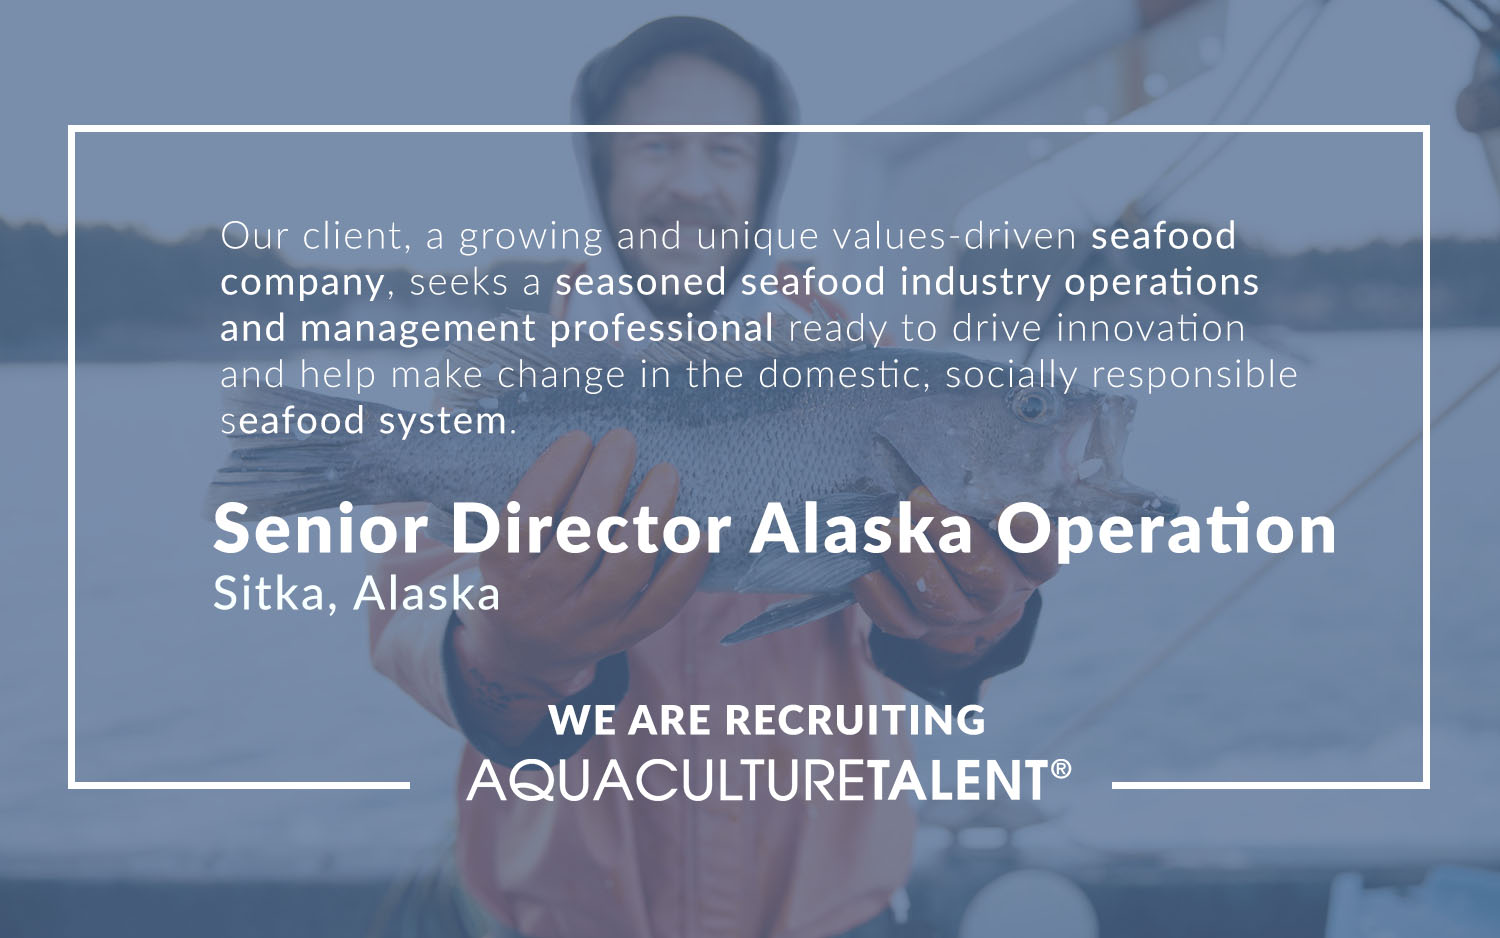 We are Recruiting, Senior Director Alaska Operation - AquacultureTalent